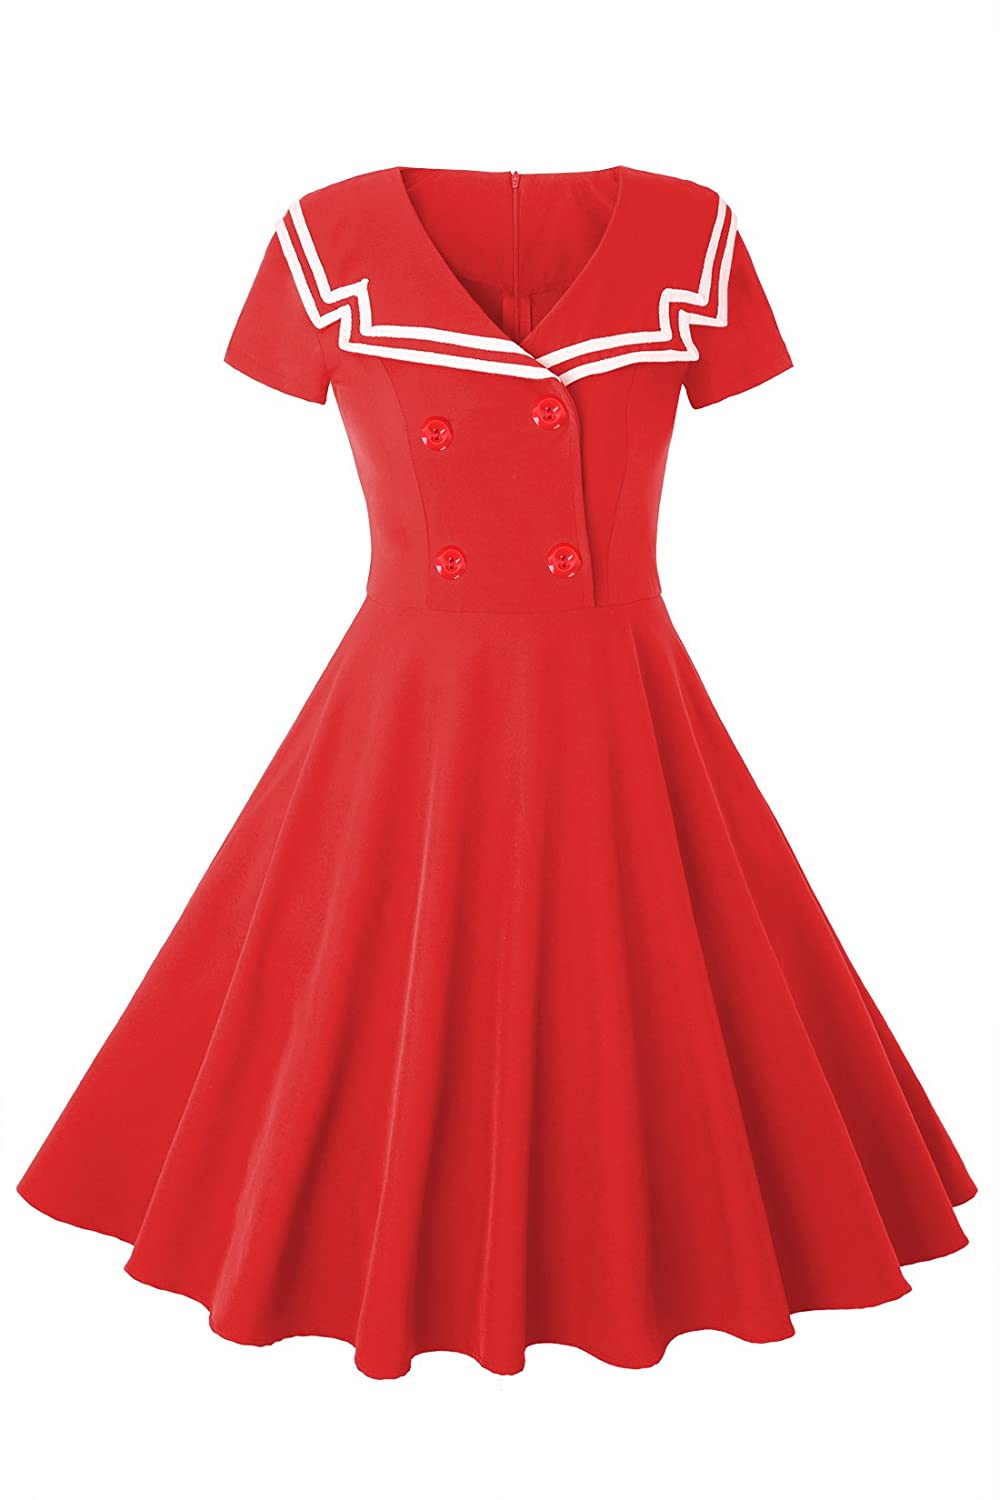 MERRYA Women's Vintage 1950s Sailor Short Sleeve Party Swing Tea Dress